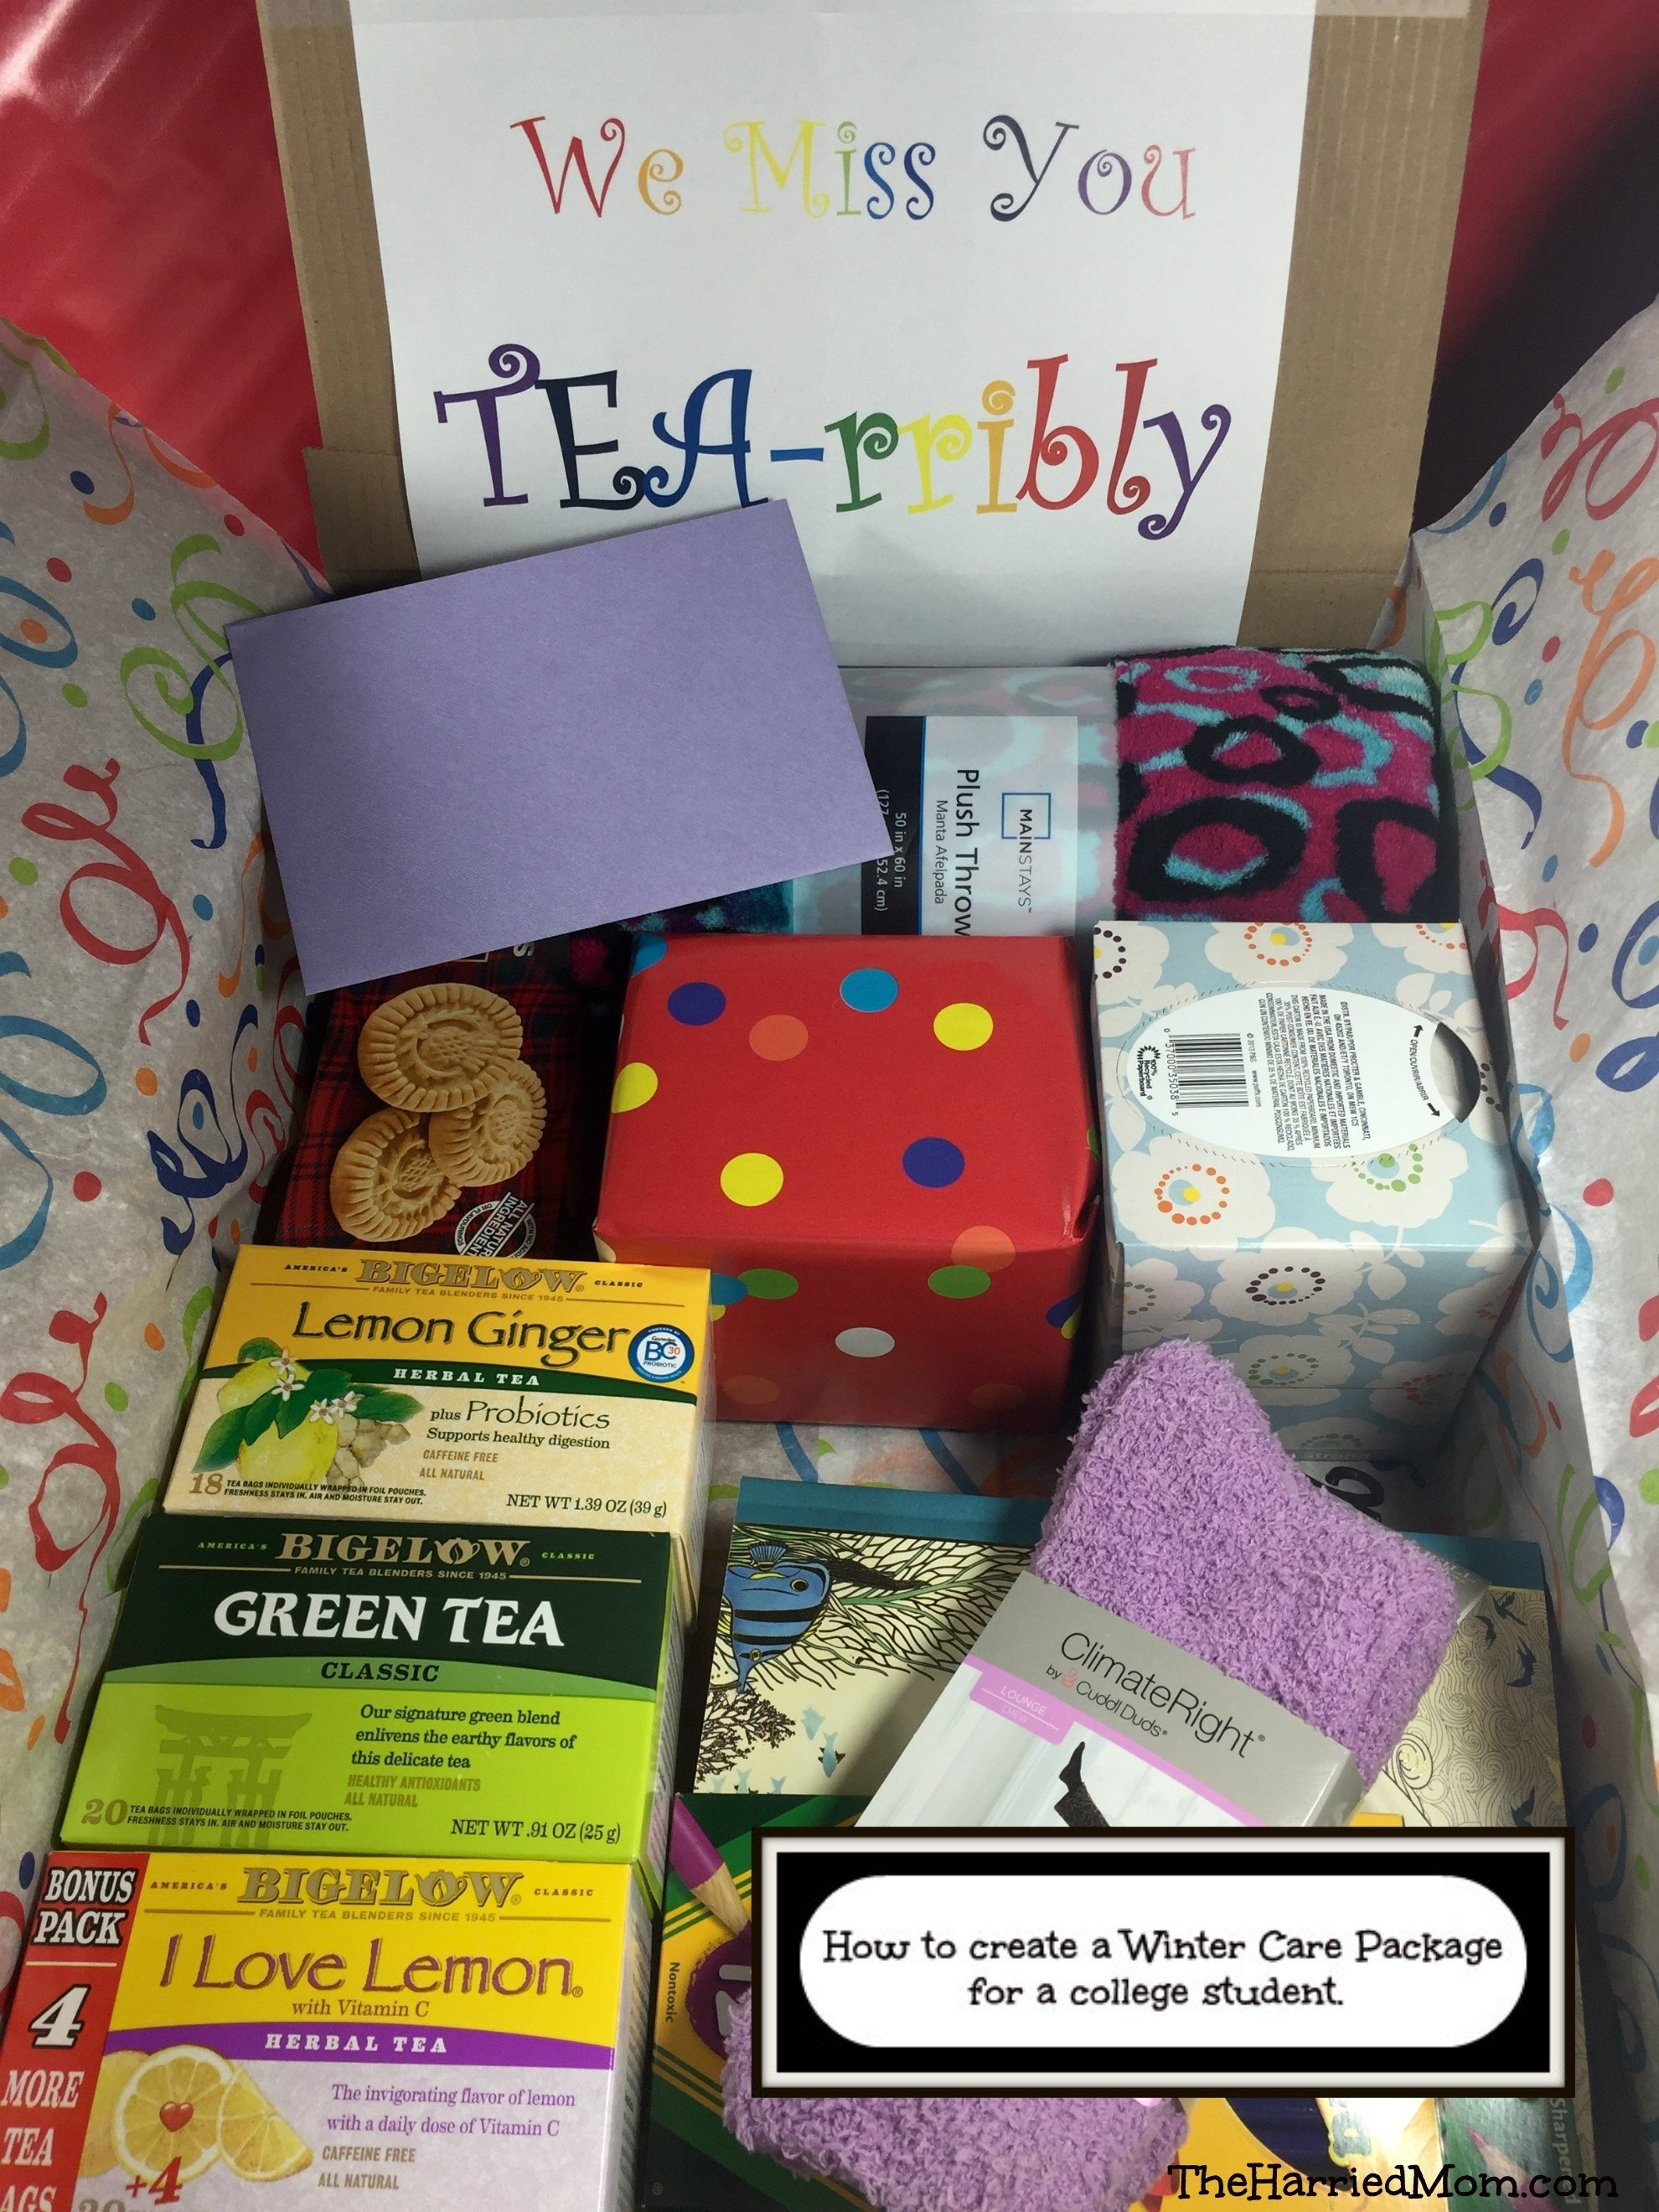 10 Most Recommended Care Package Ideas For College how to create a winter care package for a college student 3 2021